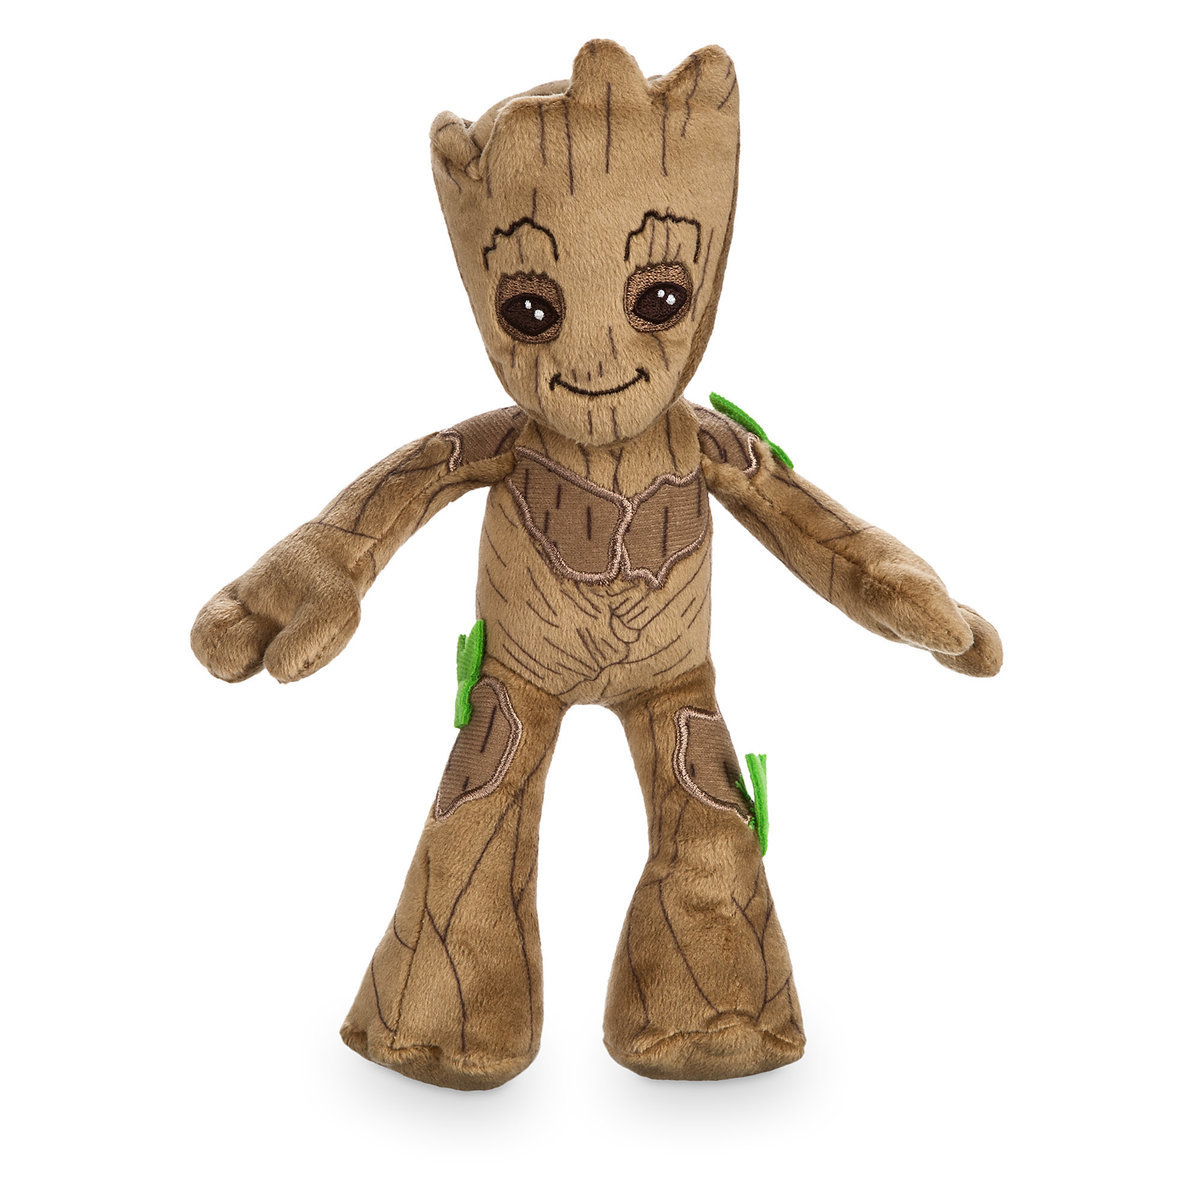 Guardians of the Galaxy Groot Mini Bean Bag Plush Genuine Disney